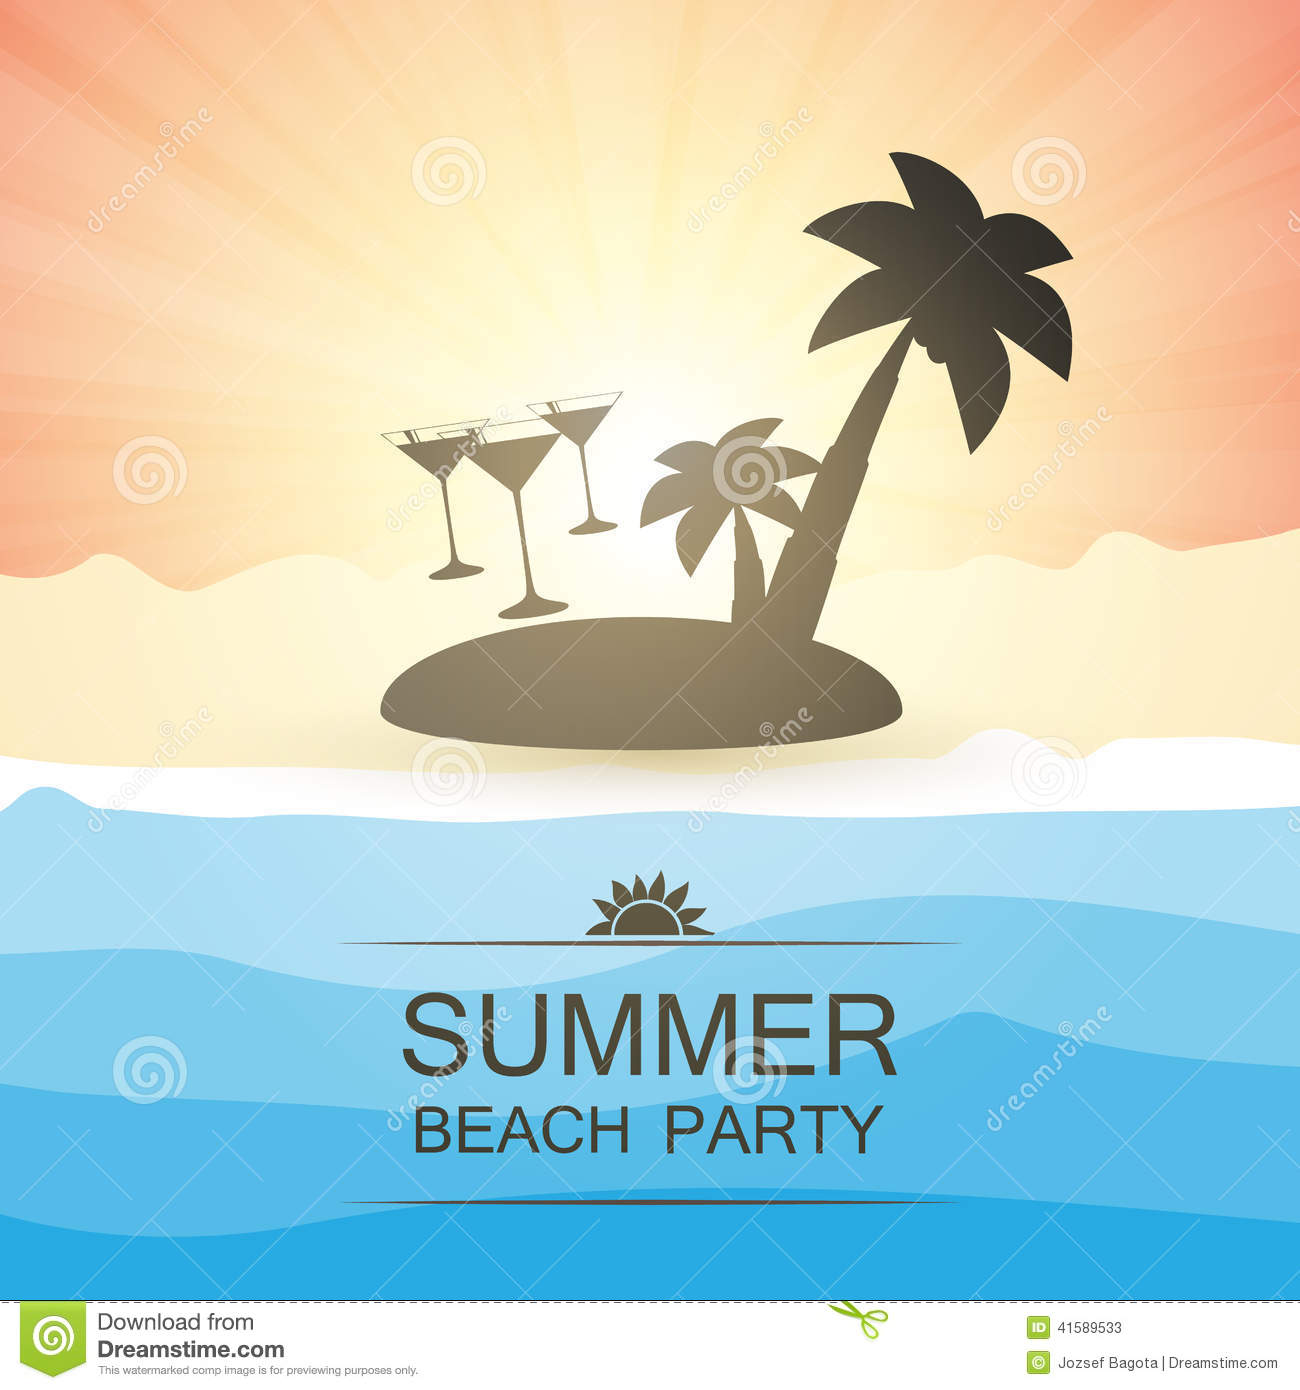 Party Island Beach: Summer Beach Party Background Stock Vector